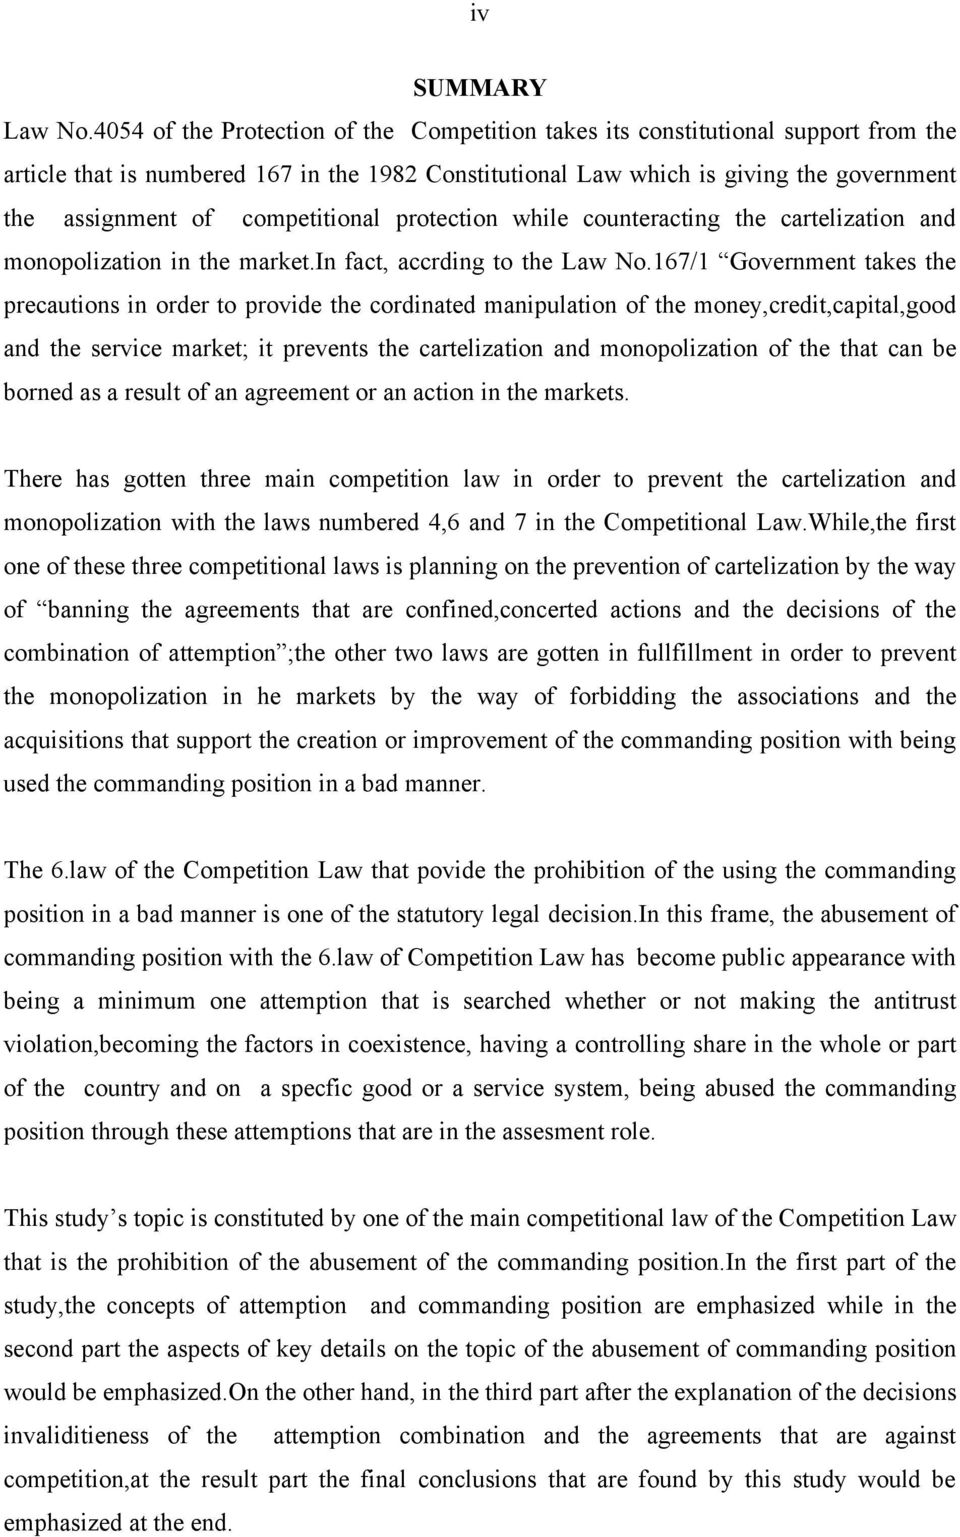 competitional protection while counteracting the cartelization and monopolization in the market.in fact, accrding to the Law No.